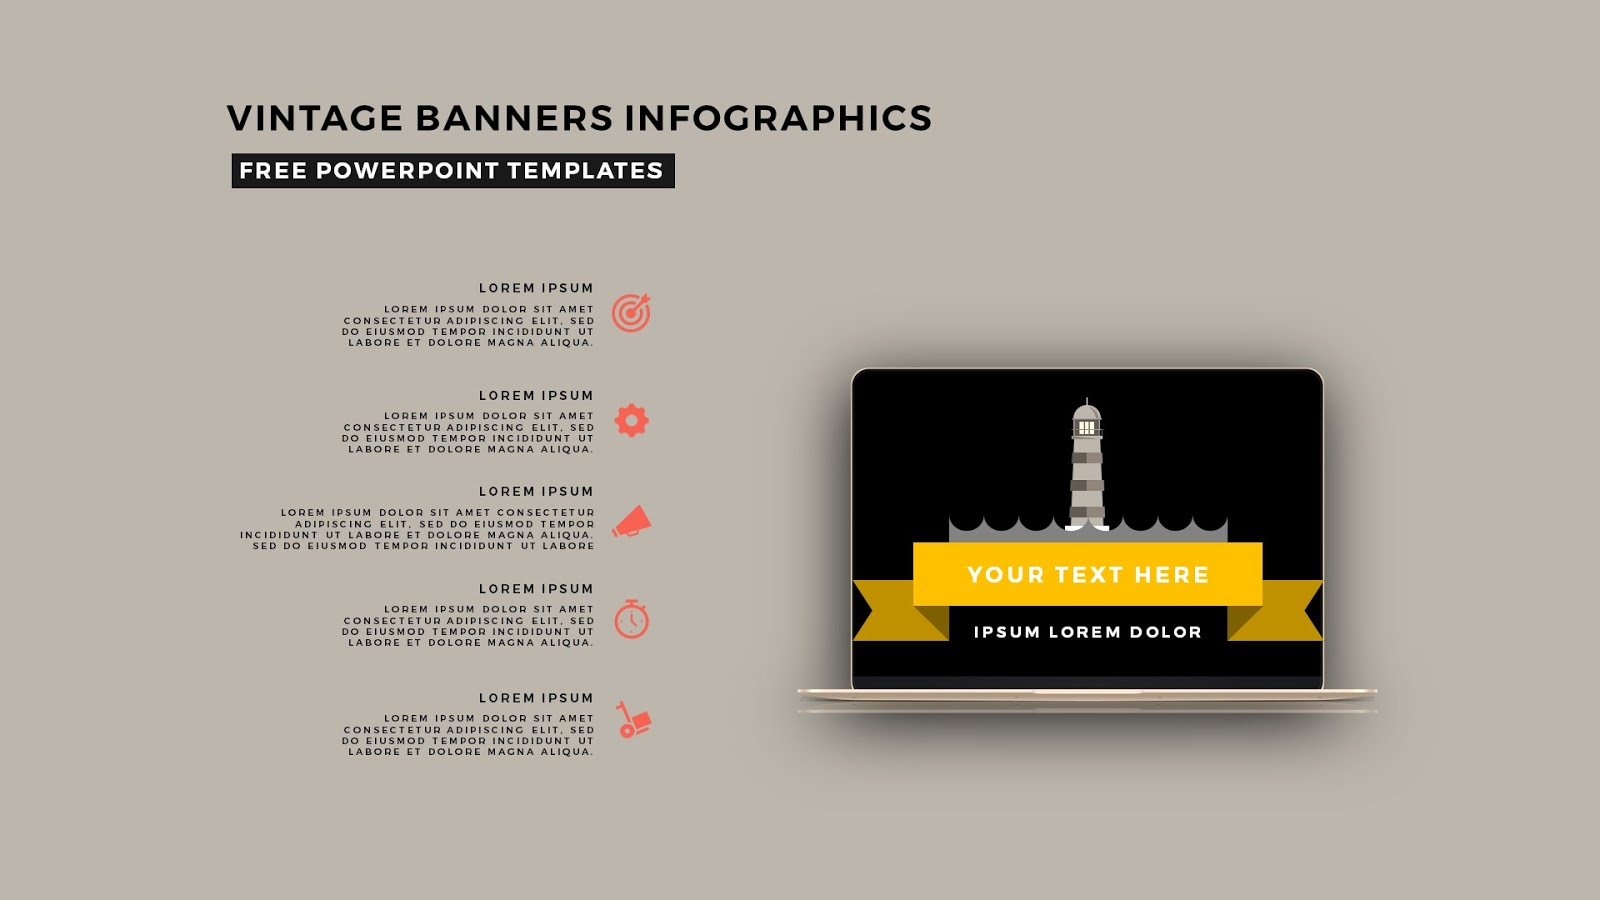 vintage banners infographic free powerpoint template